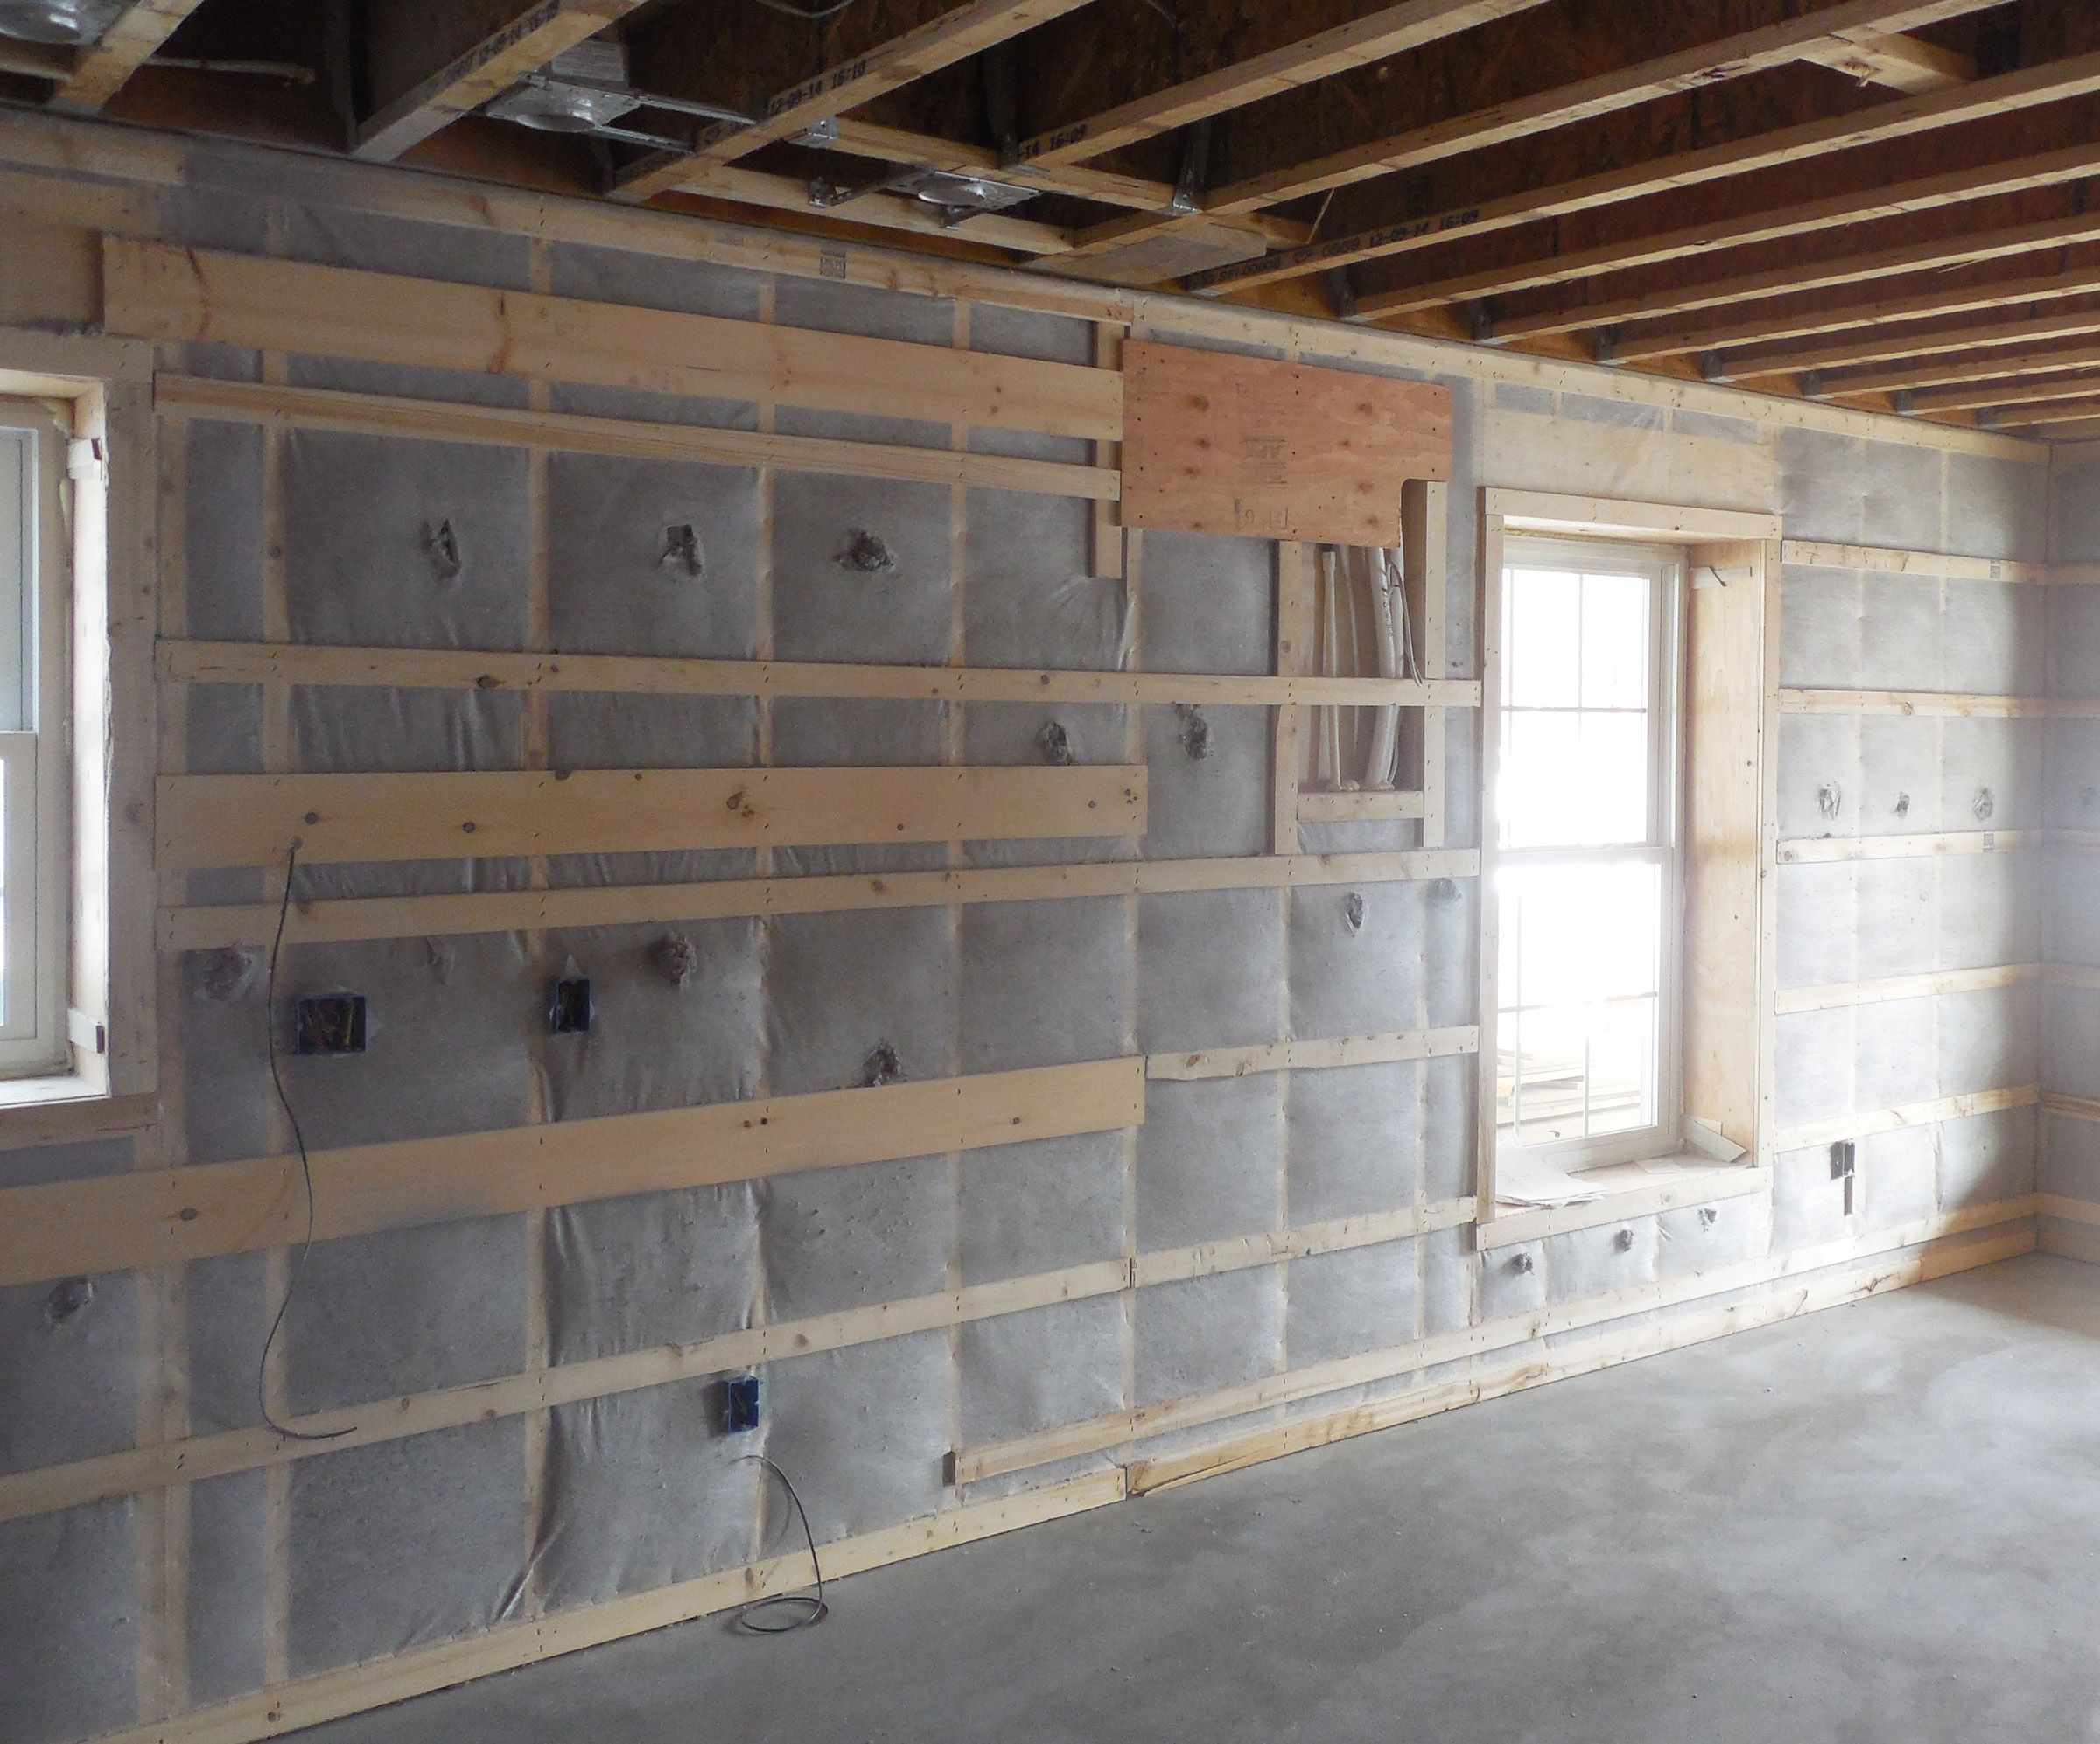 Double Wall Construction Building : The double stud walls were insulated with dense packed